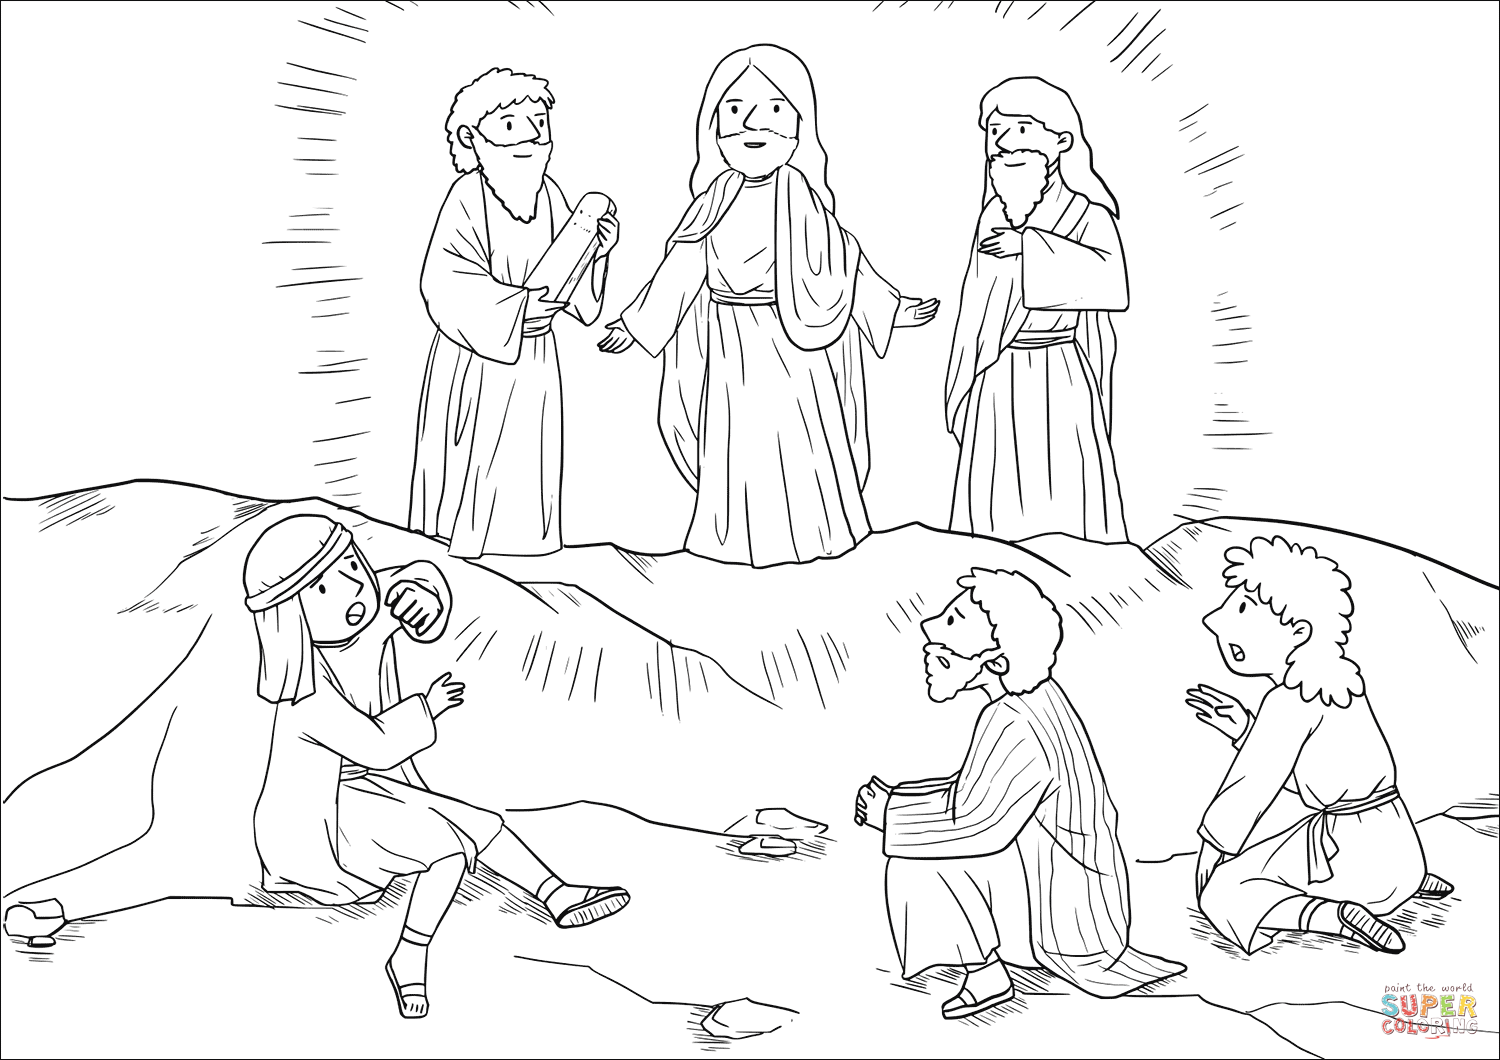 the transfiguration of jesus coloring page the river of life transfiguration coloring page transfiguration coloring jesus the of